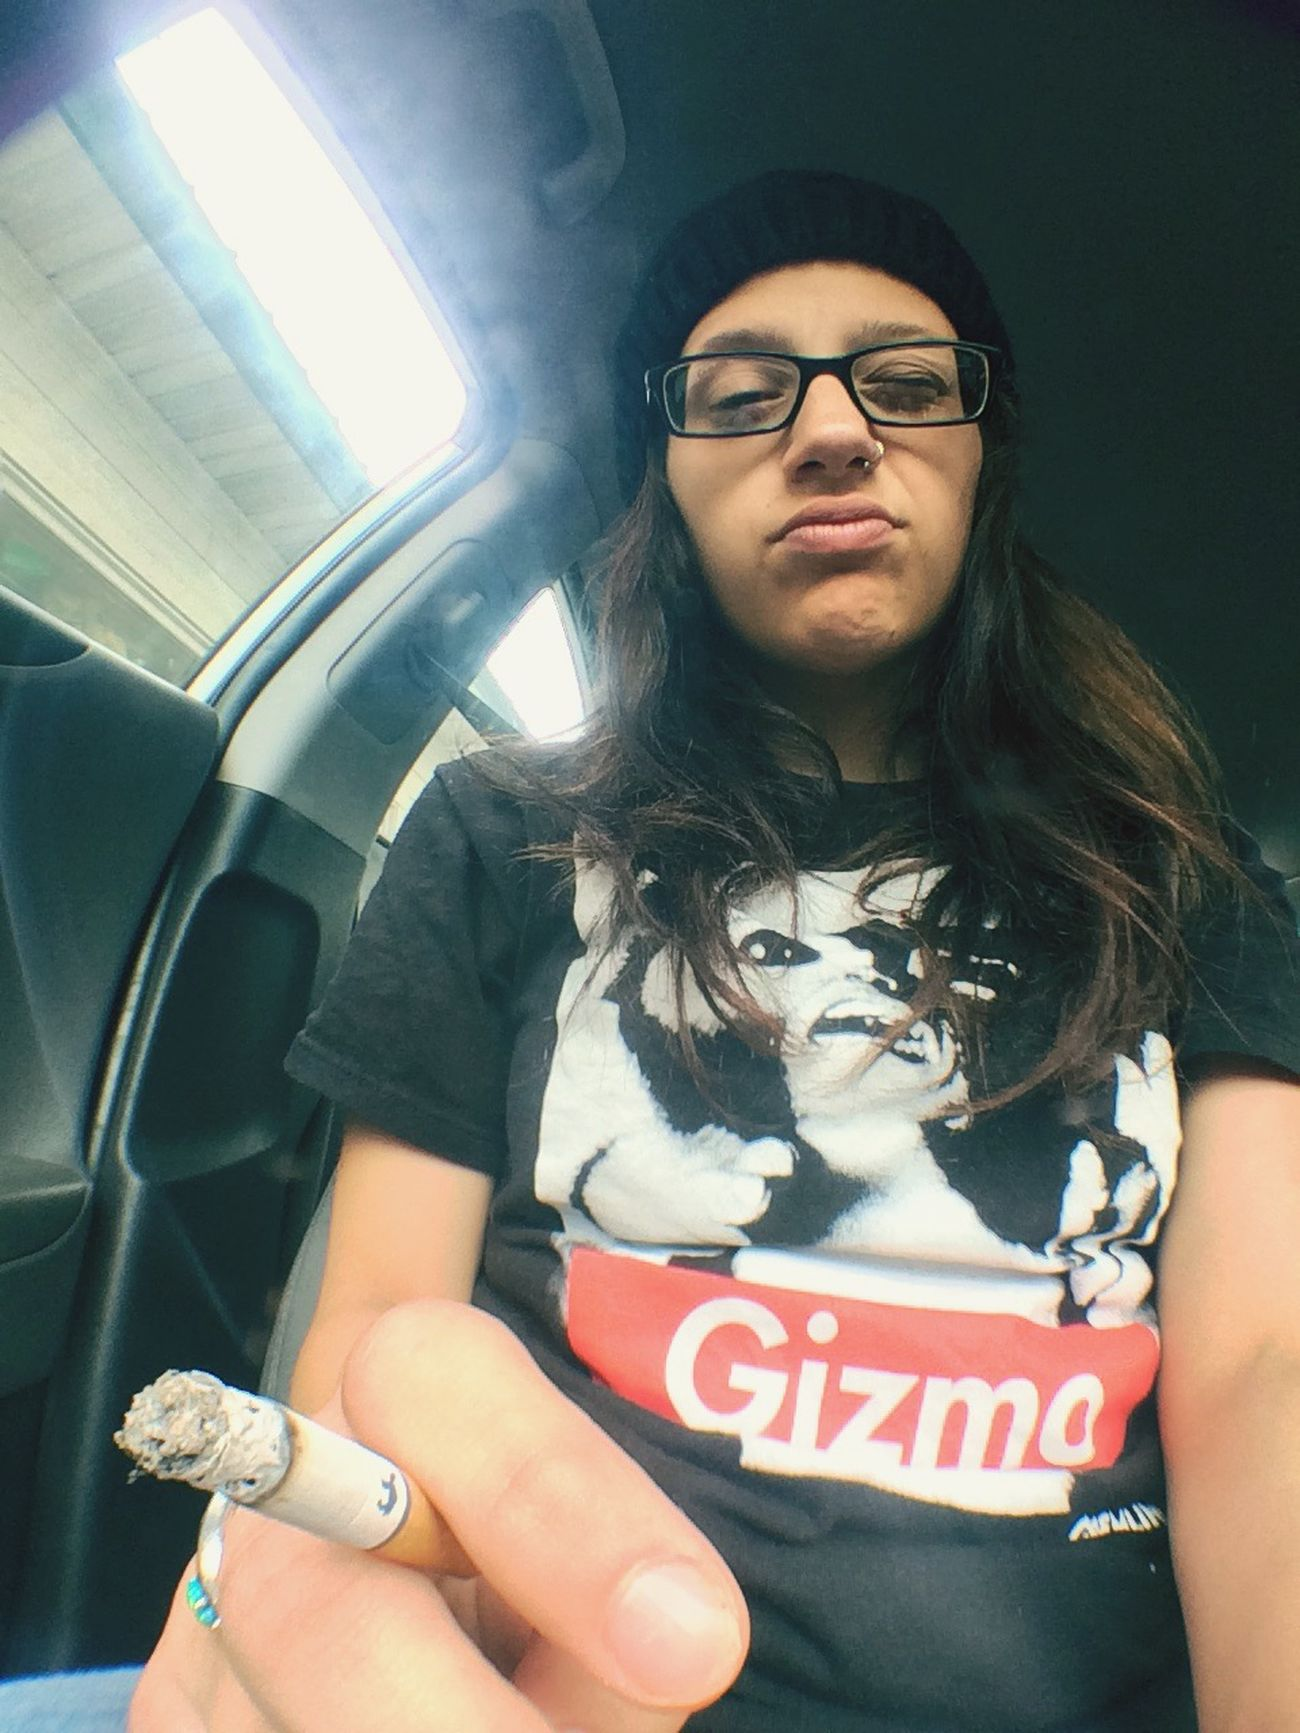 Camel Camels Gizmo Gremlins Mean Muggin But Not Really Mean Girls Who Smoke Happy Dirty Heads